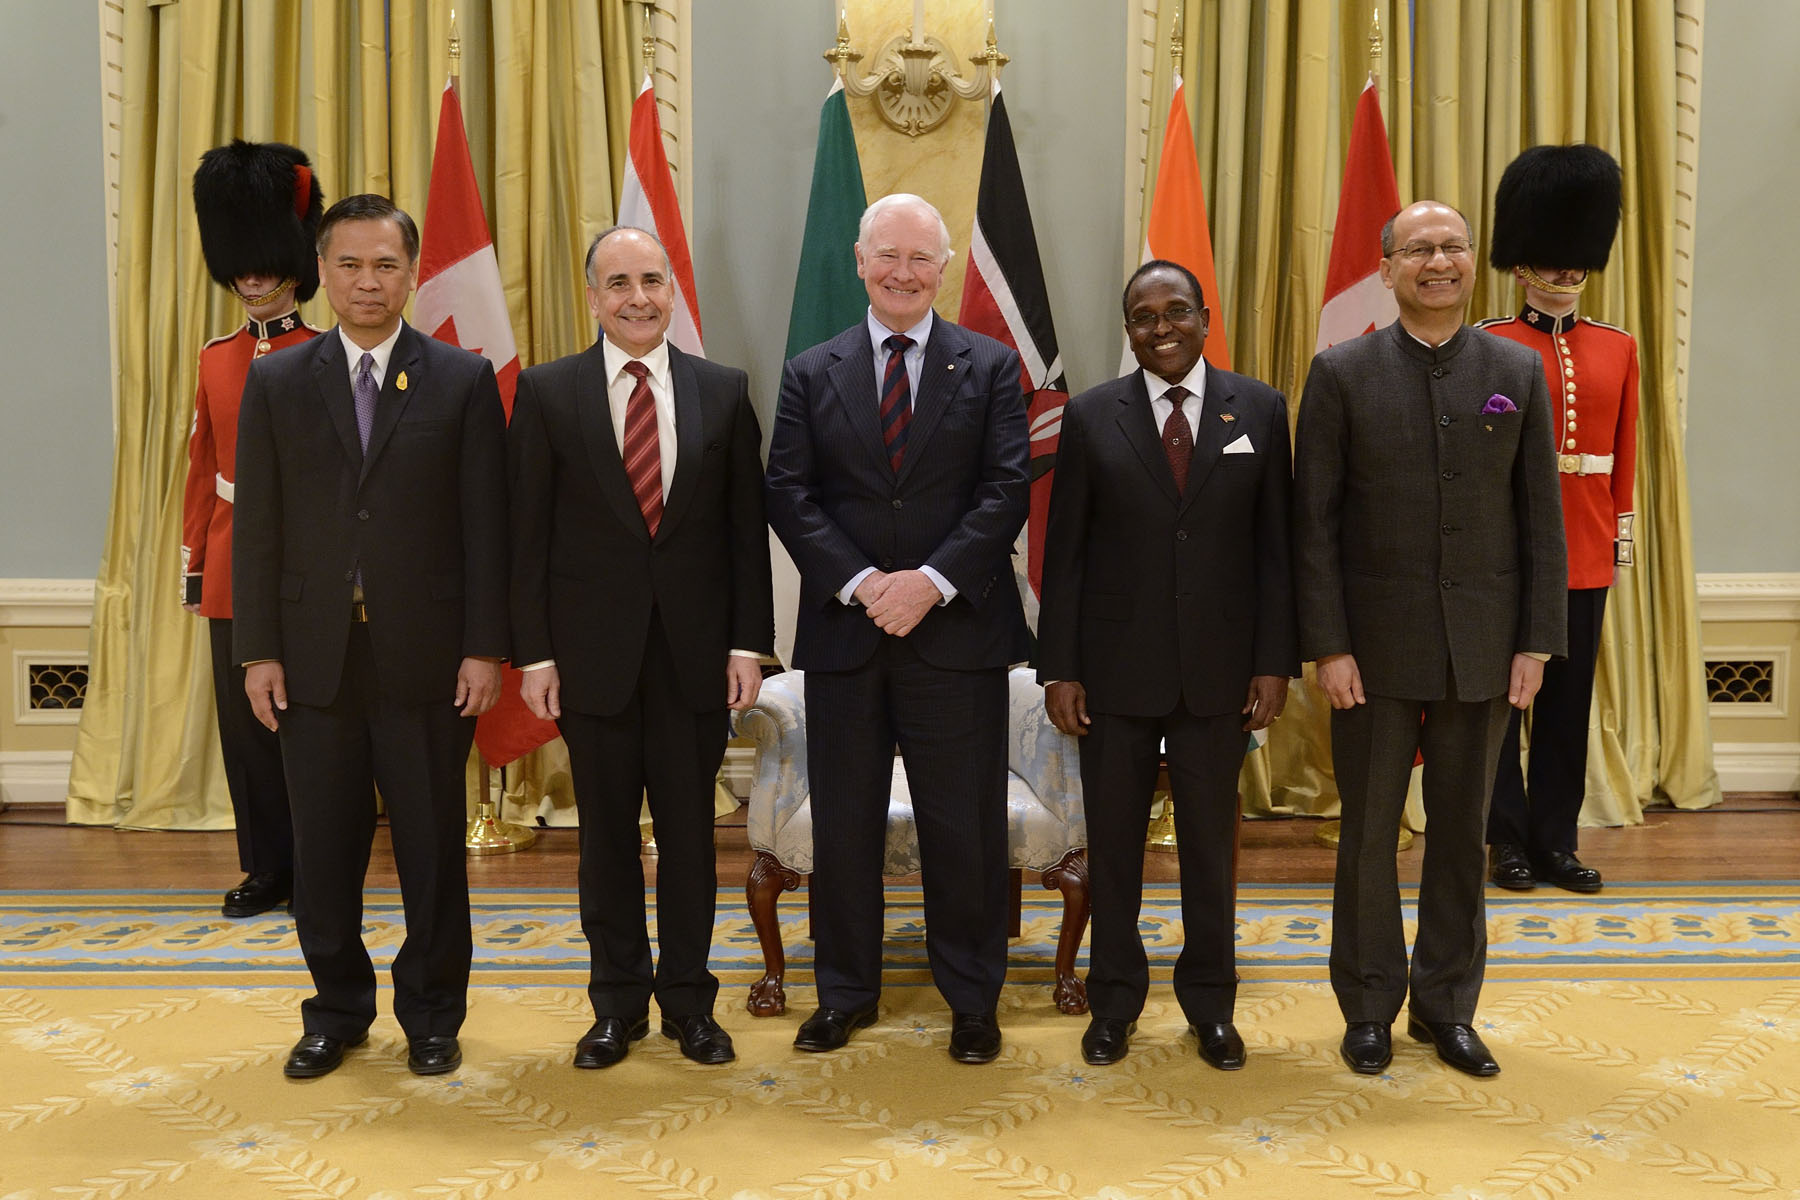 Official photo of the Governor General with the new four heads of mission from Thailand, Algeria, Kenya and India.